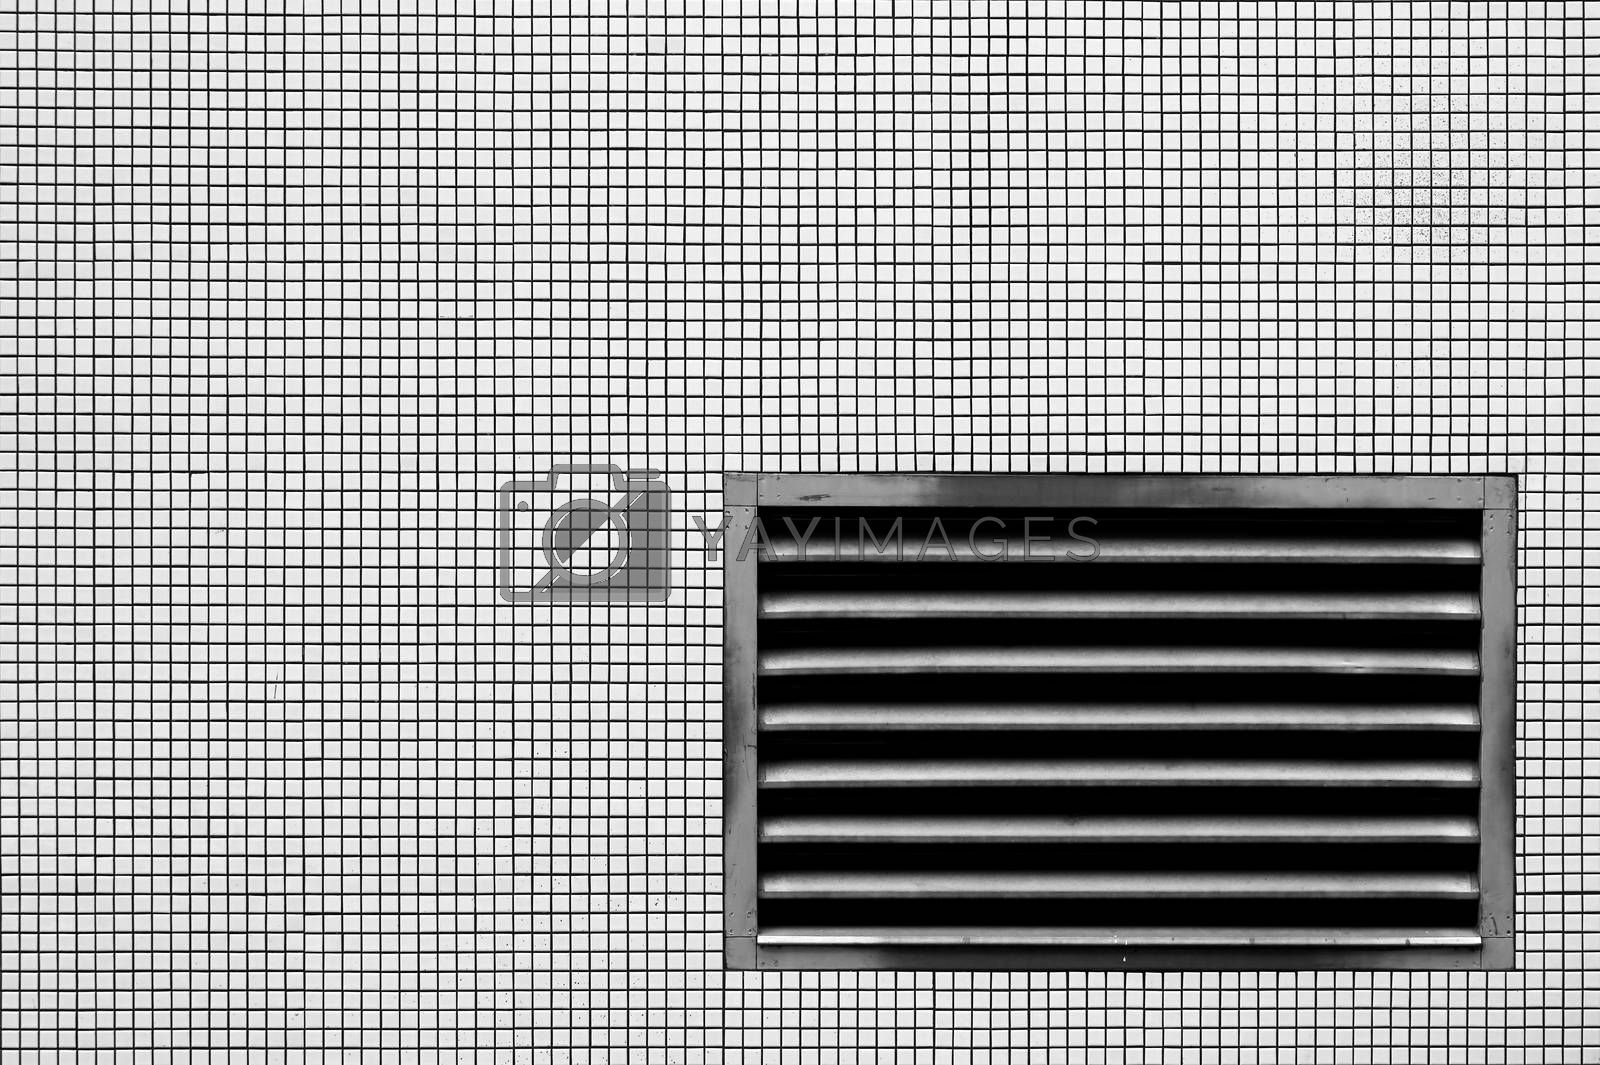 Royalty free image of Ventilation grille by ginton